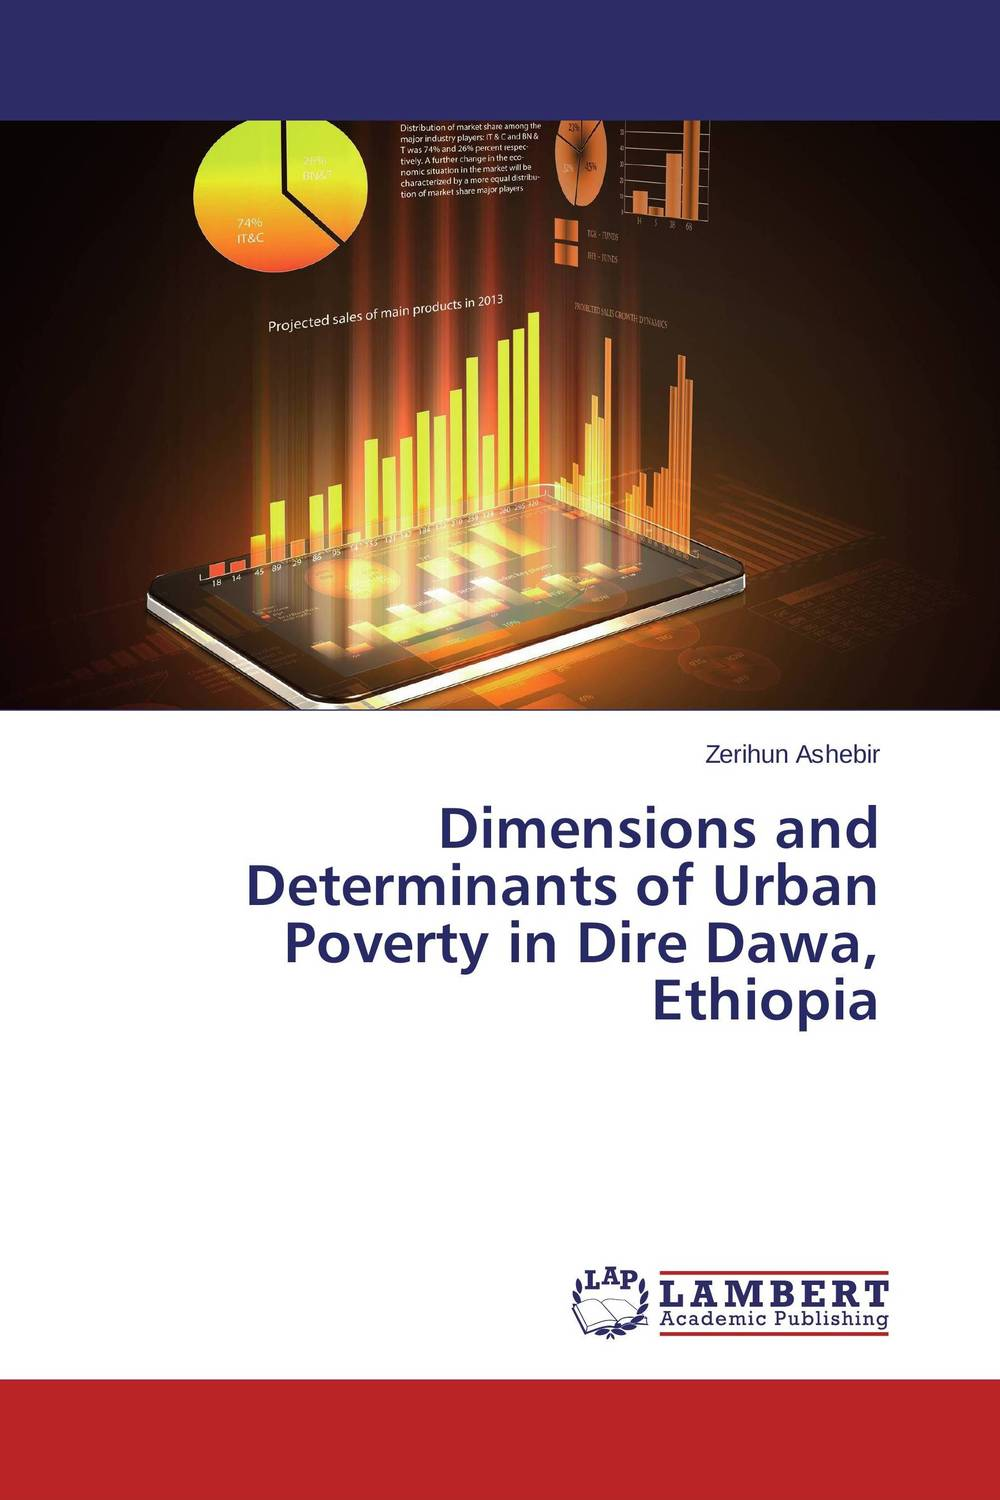 Фото Dimensions and Determinants of Urban Poverty in Dire Dawa, Ethiopia cervical cancer in amhara region in ethiopia